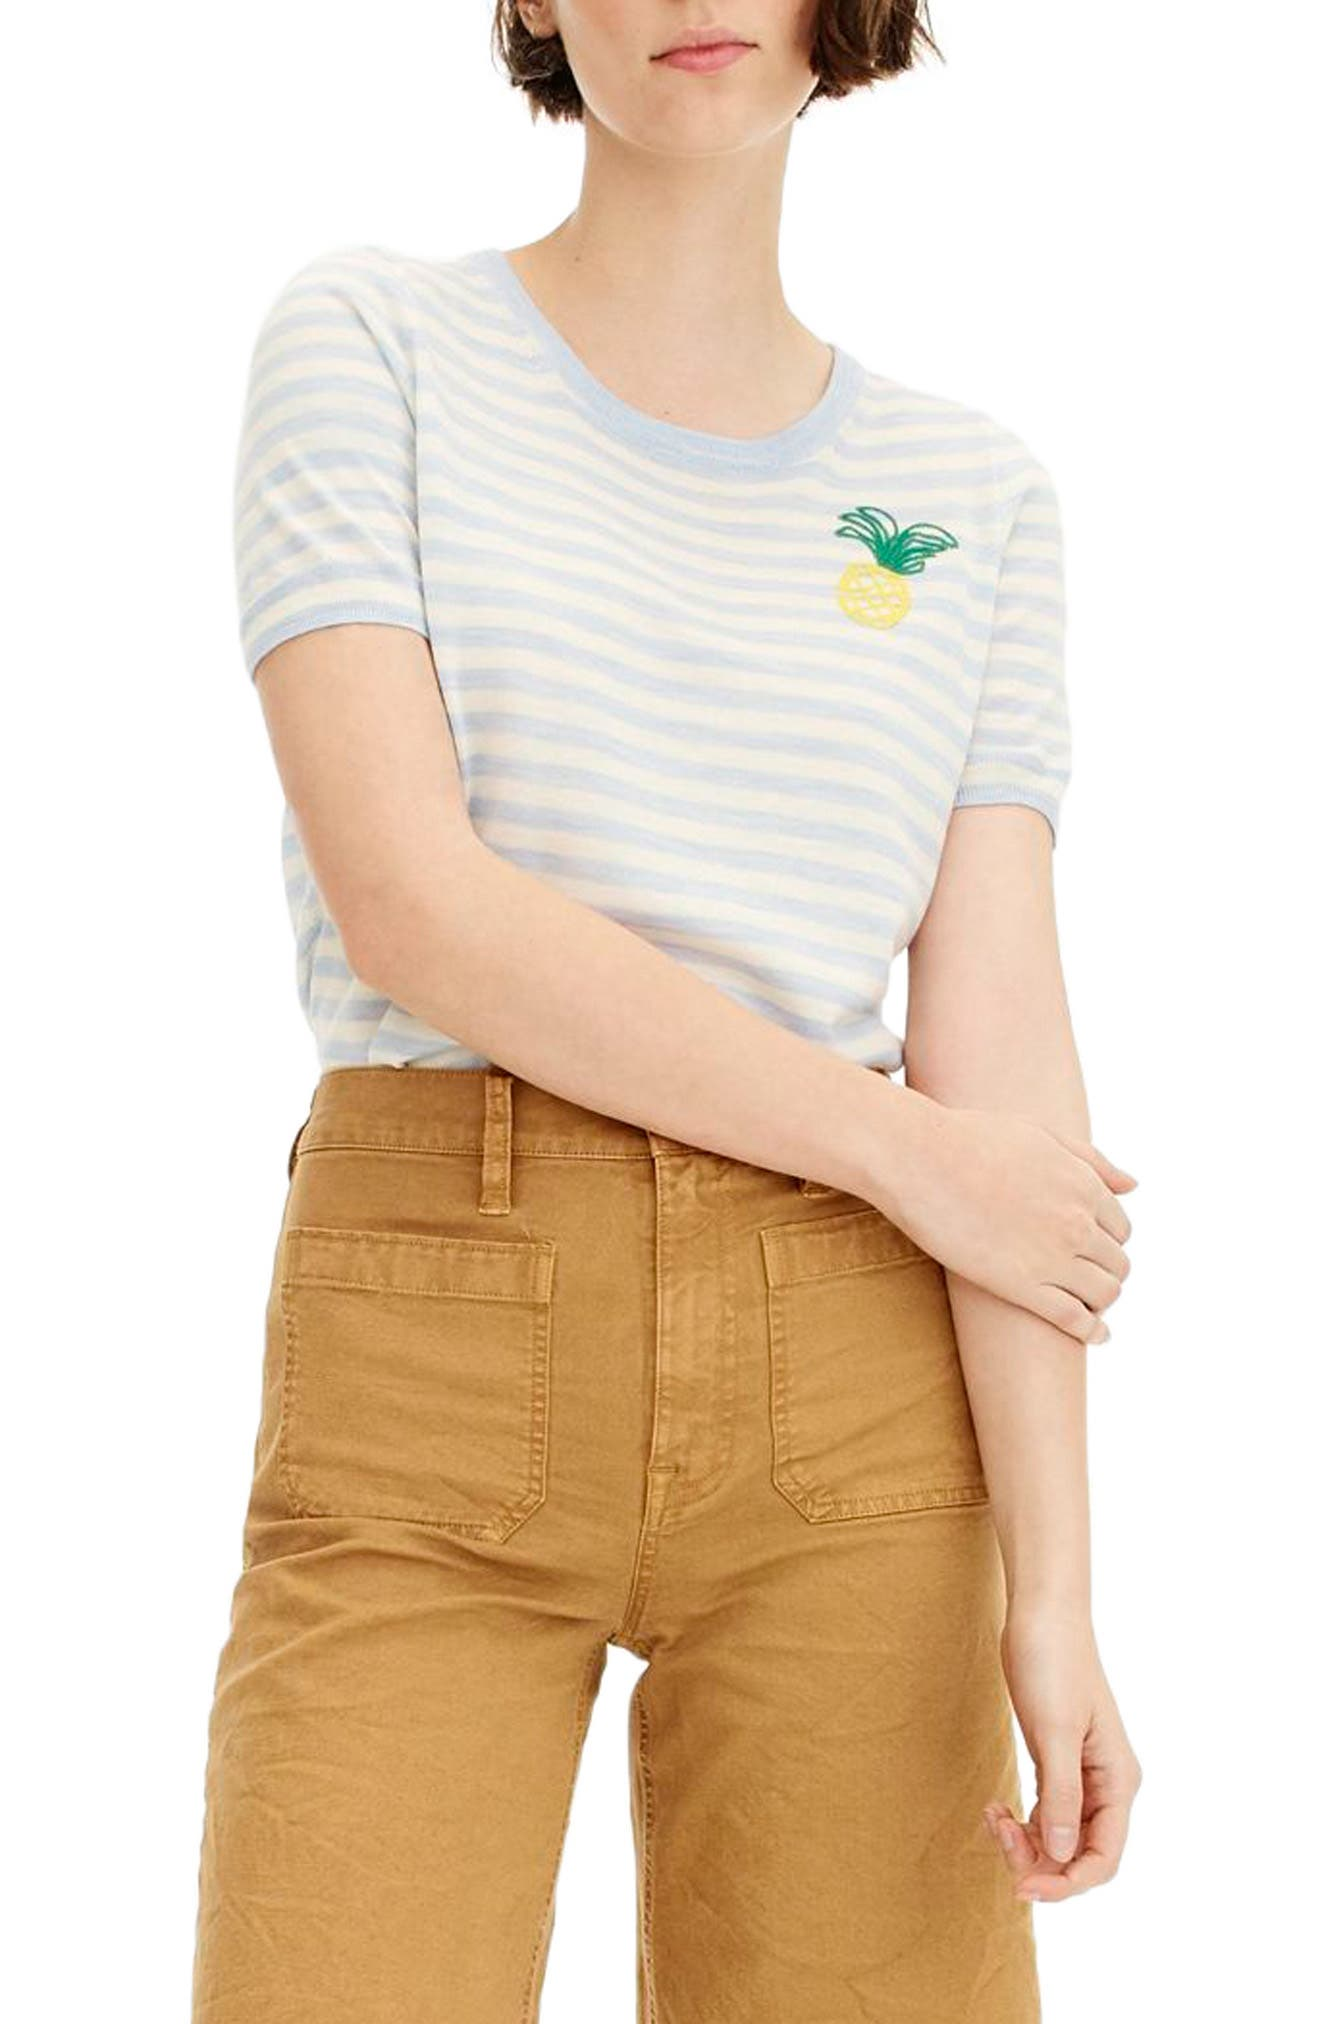 J.Crew Tippi Pineapple Stripe Short Sleeve Sweater